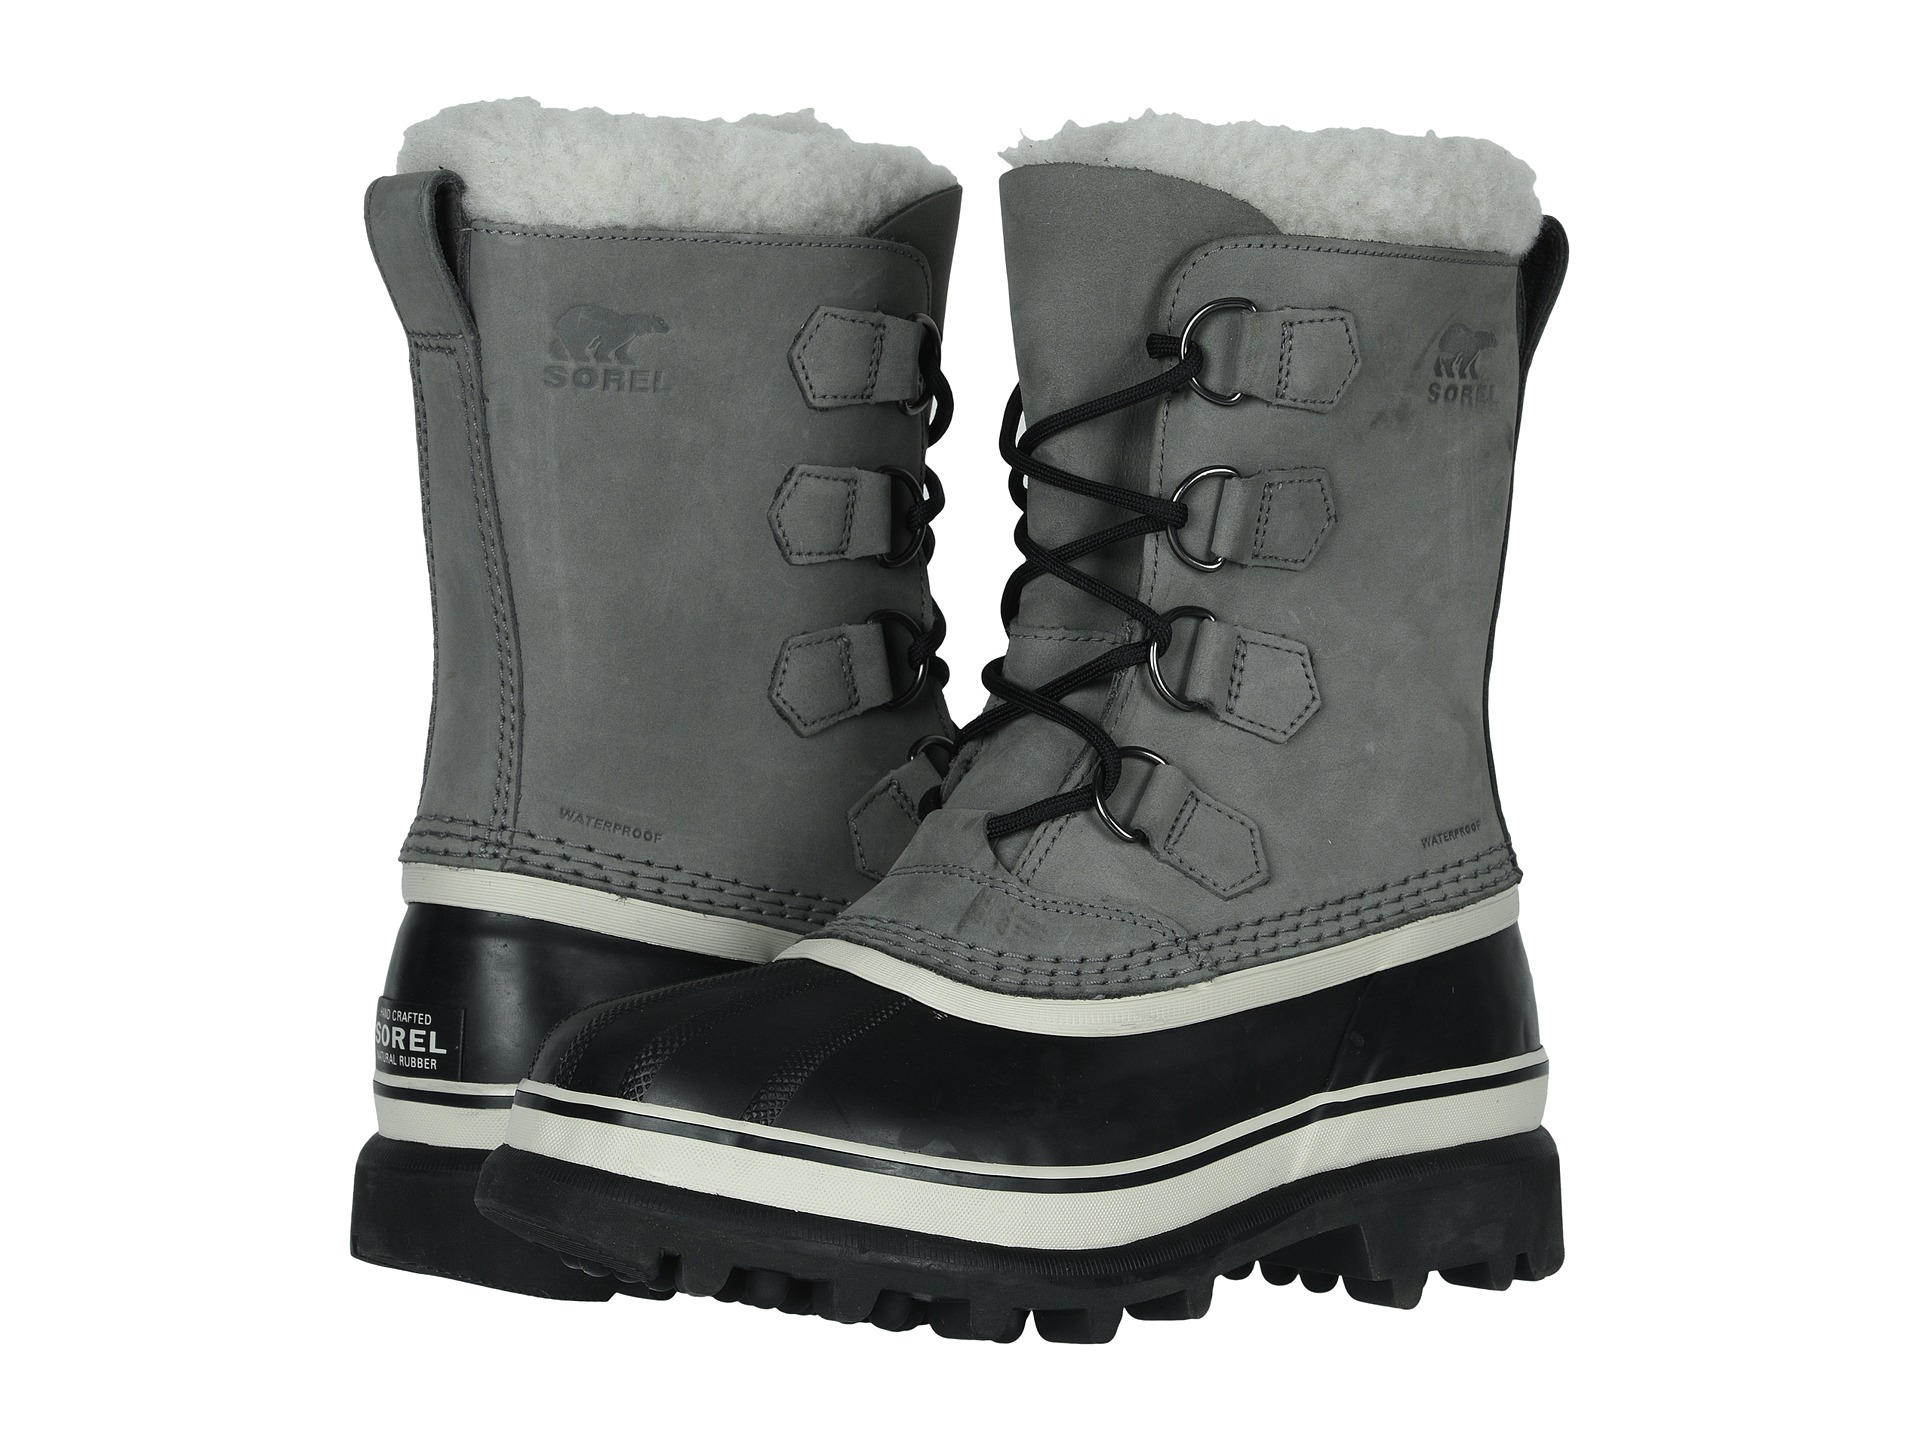 Womens Snow Boots Size 12 Wide | Santa Barbara Institute for